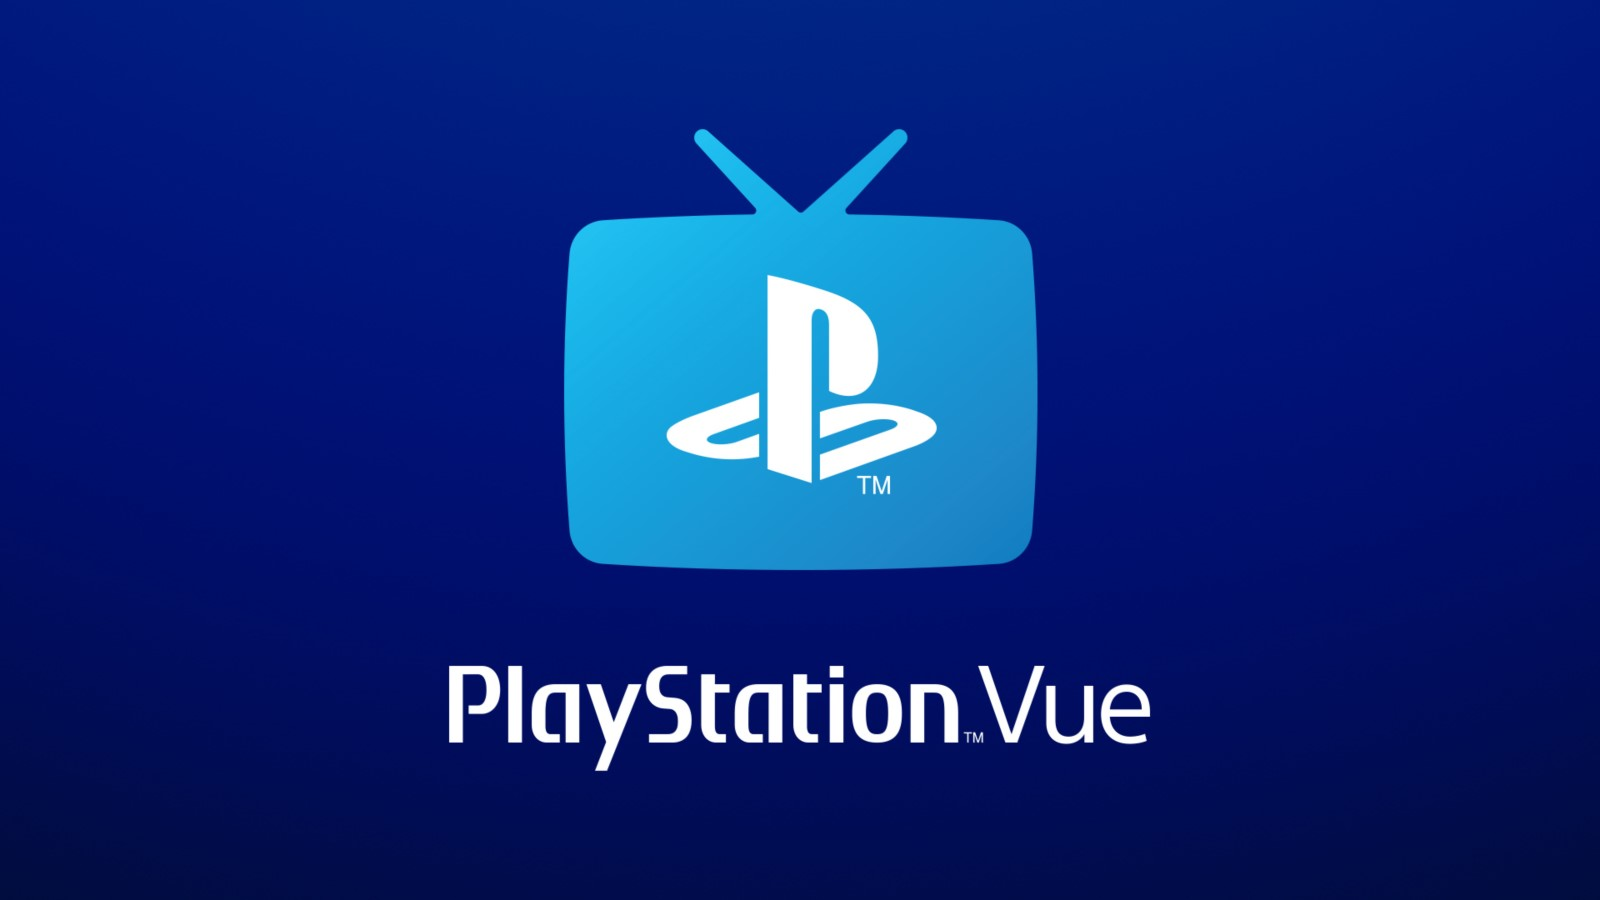 Best Kodi Addons January 2020.Sony Will Shut Down Playstation Vue At The End Of January